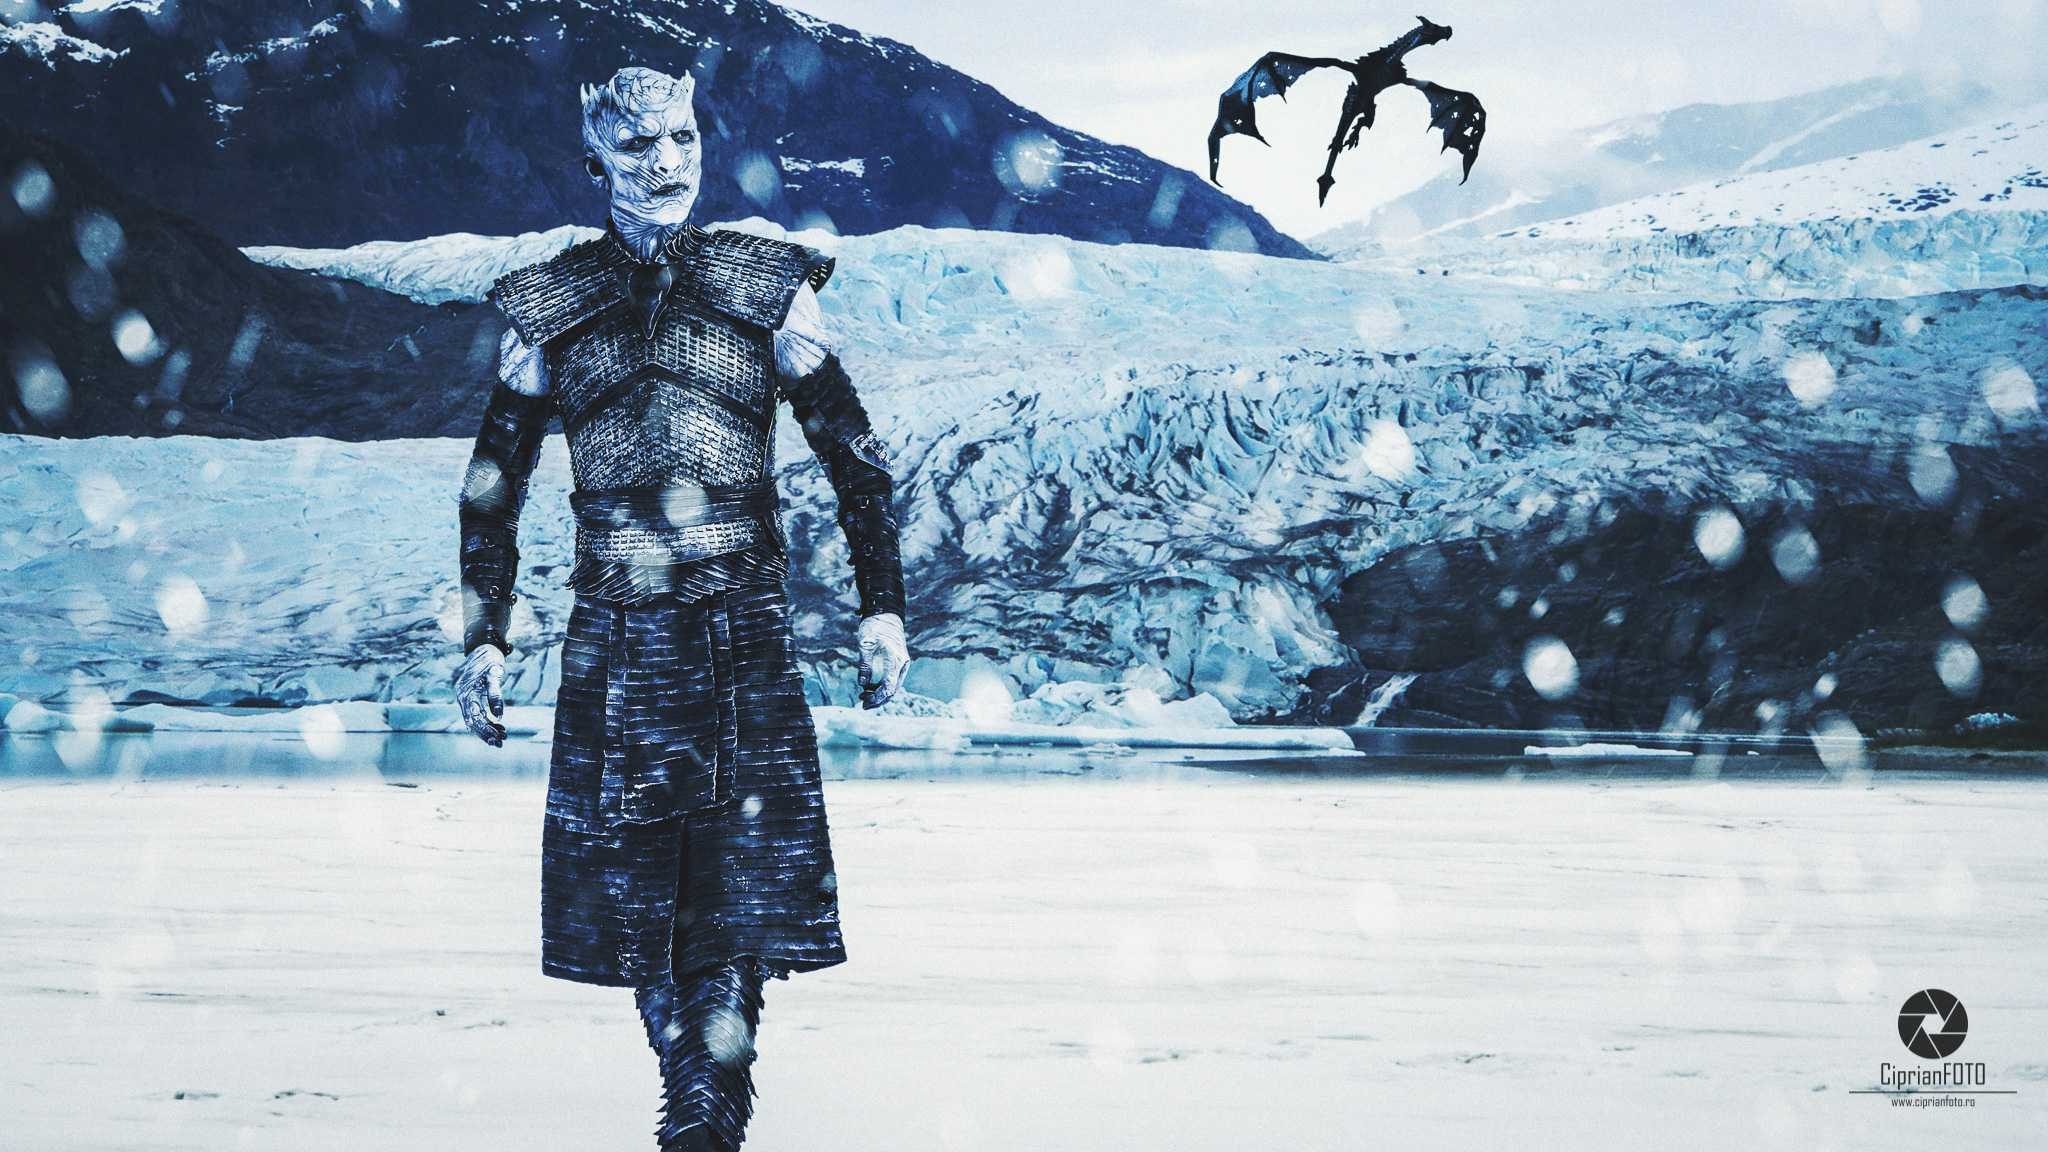 Night King, Photoshop Manipulation Tutorial, CiprianFOTO